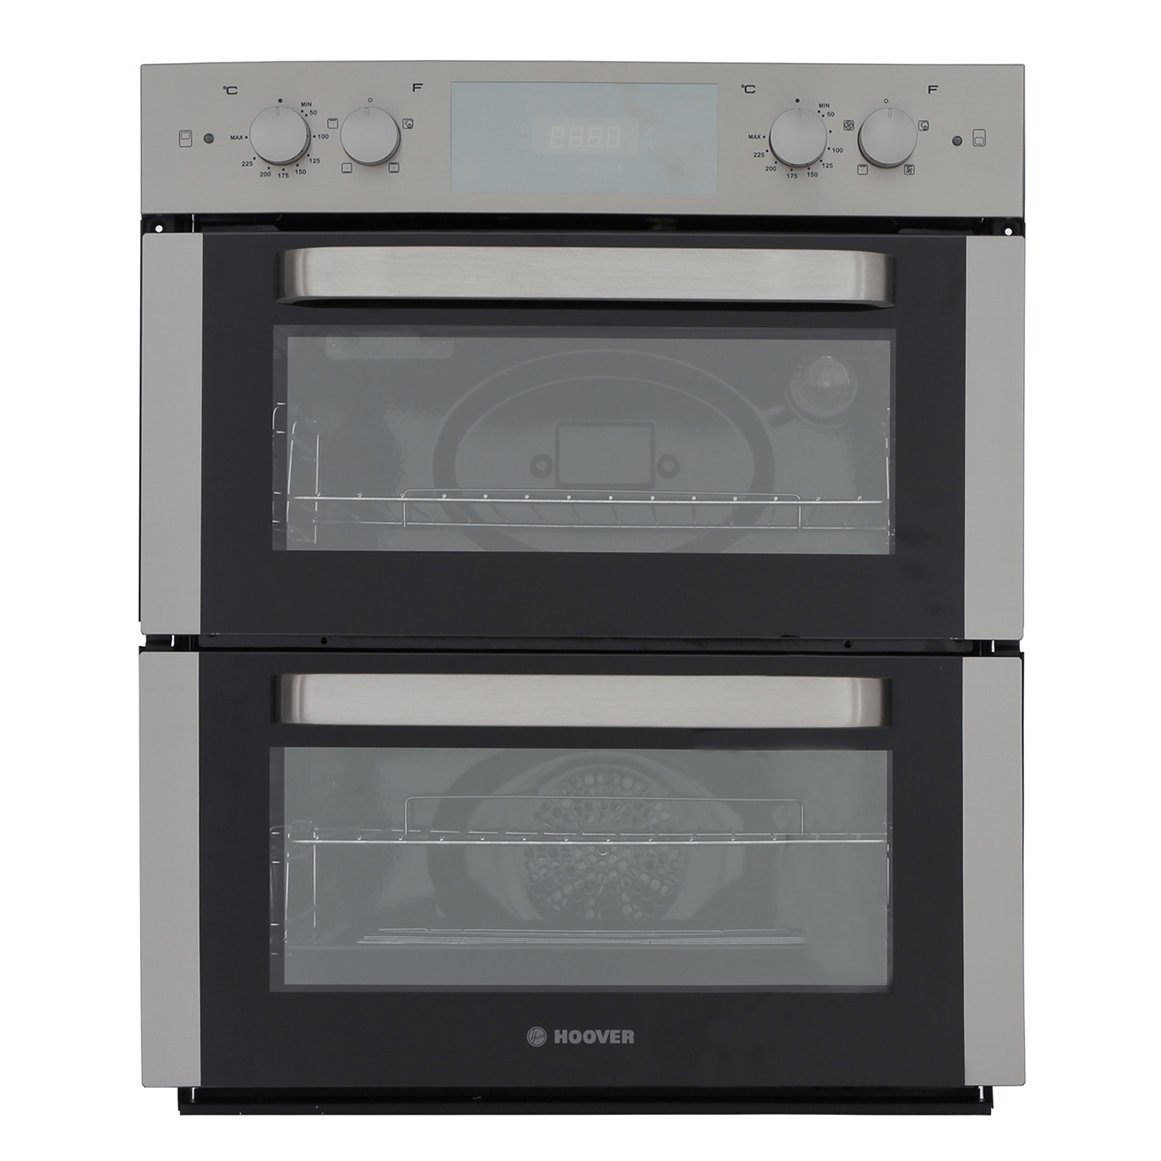 Hoover HO7D3120IN Double Built Under Electric Oven